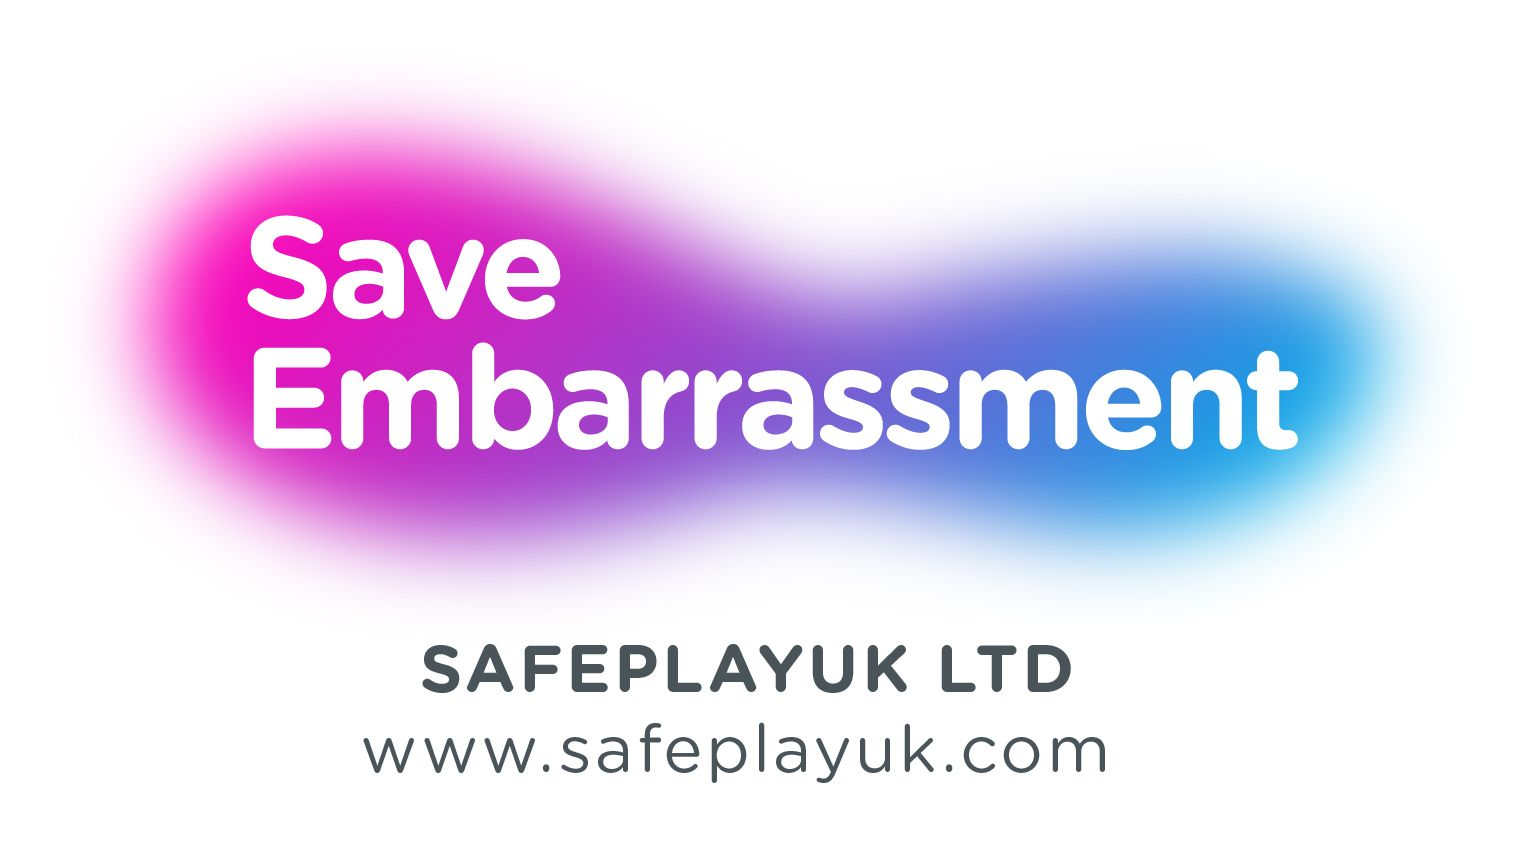 Save Embarrassment logo